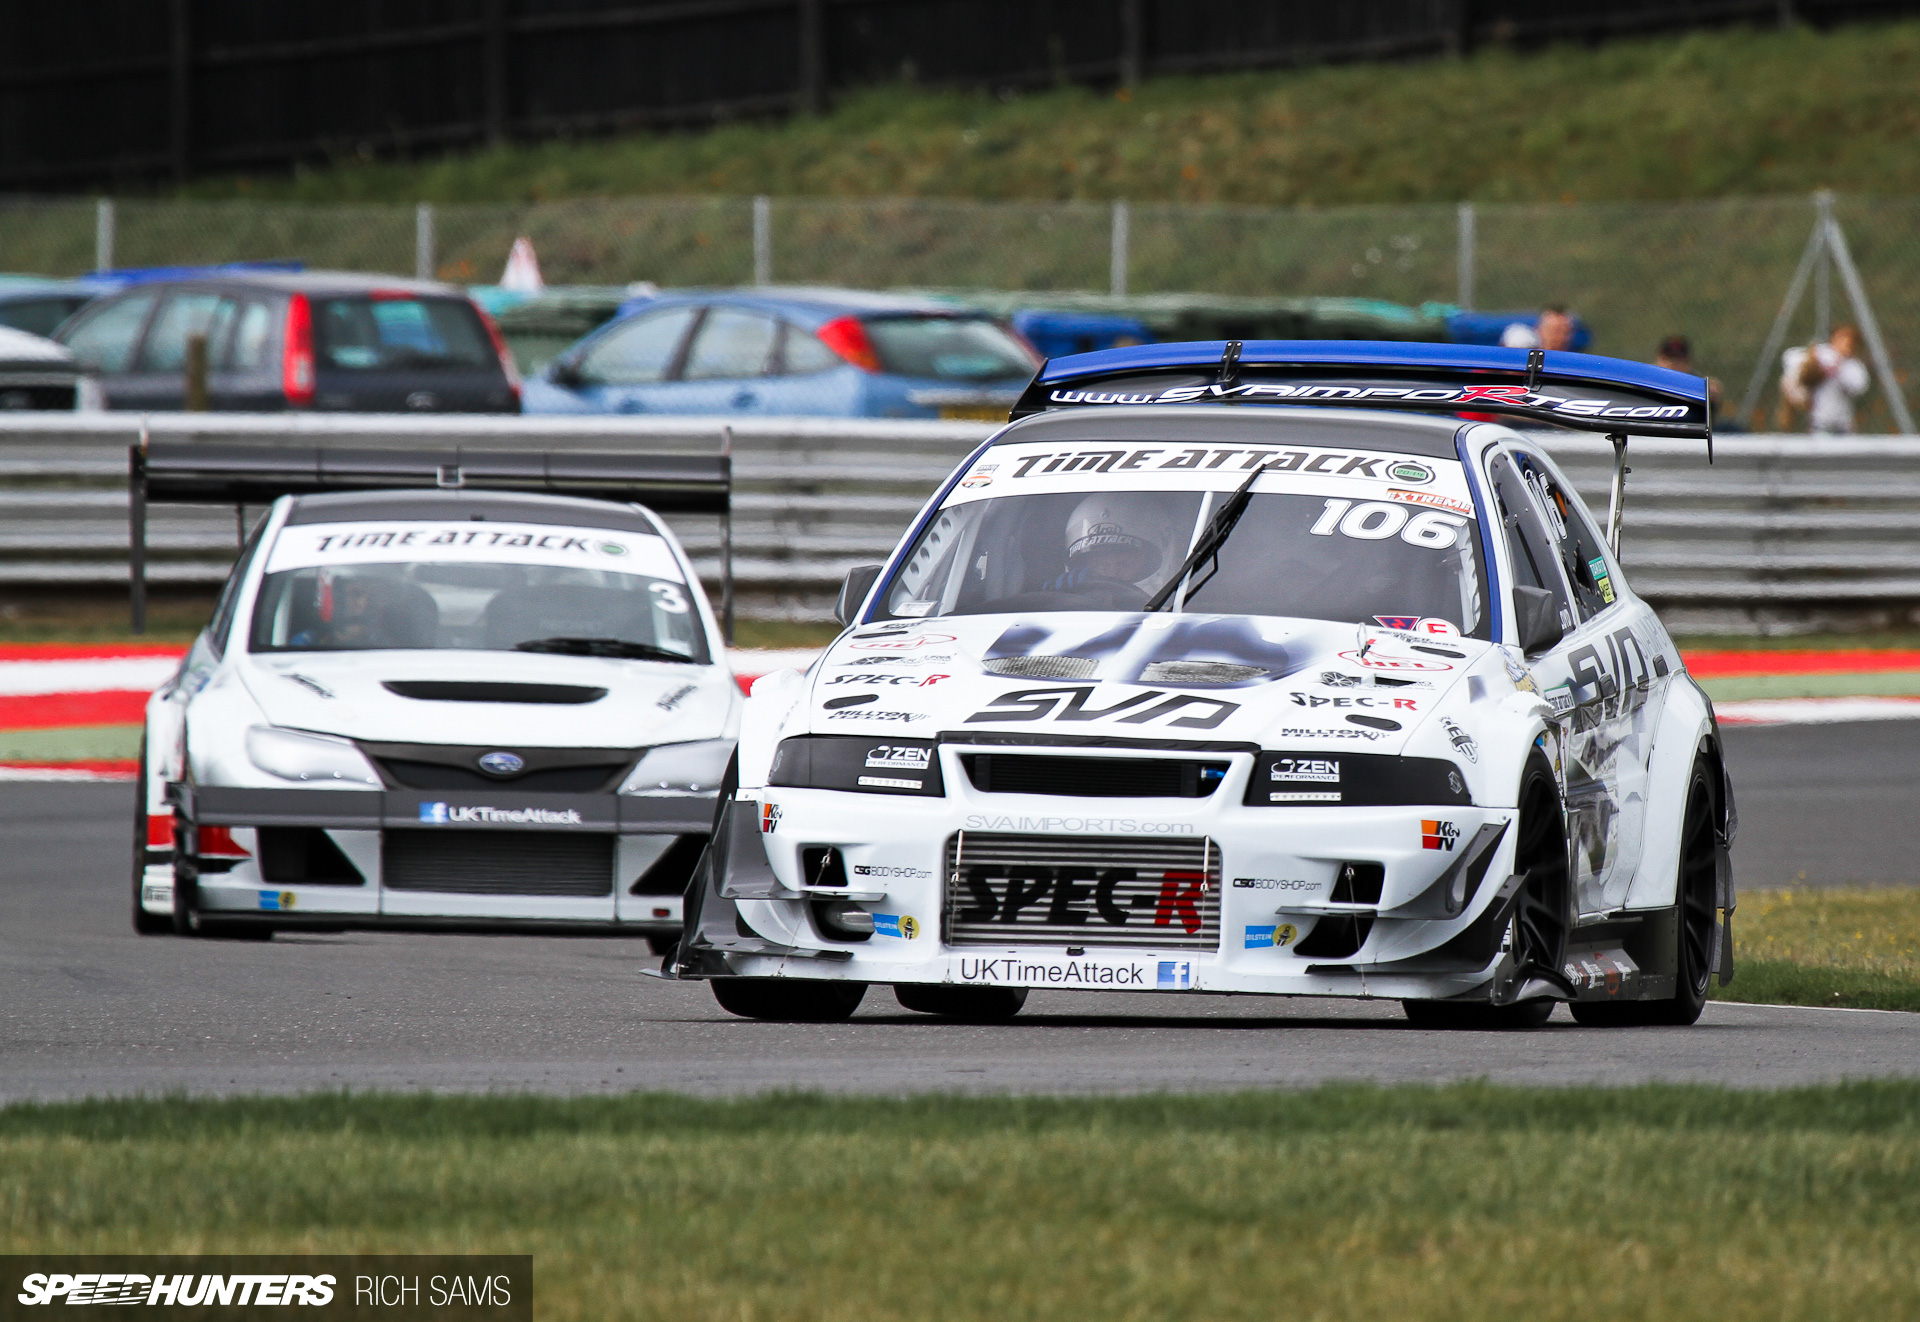 Dream Car Racing Evo >> Attacking Snetterton - One Lap At A Time - Speedhunters